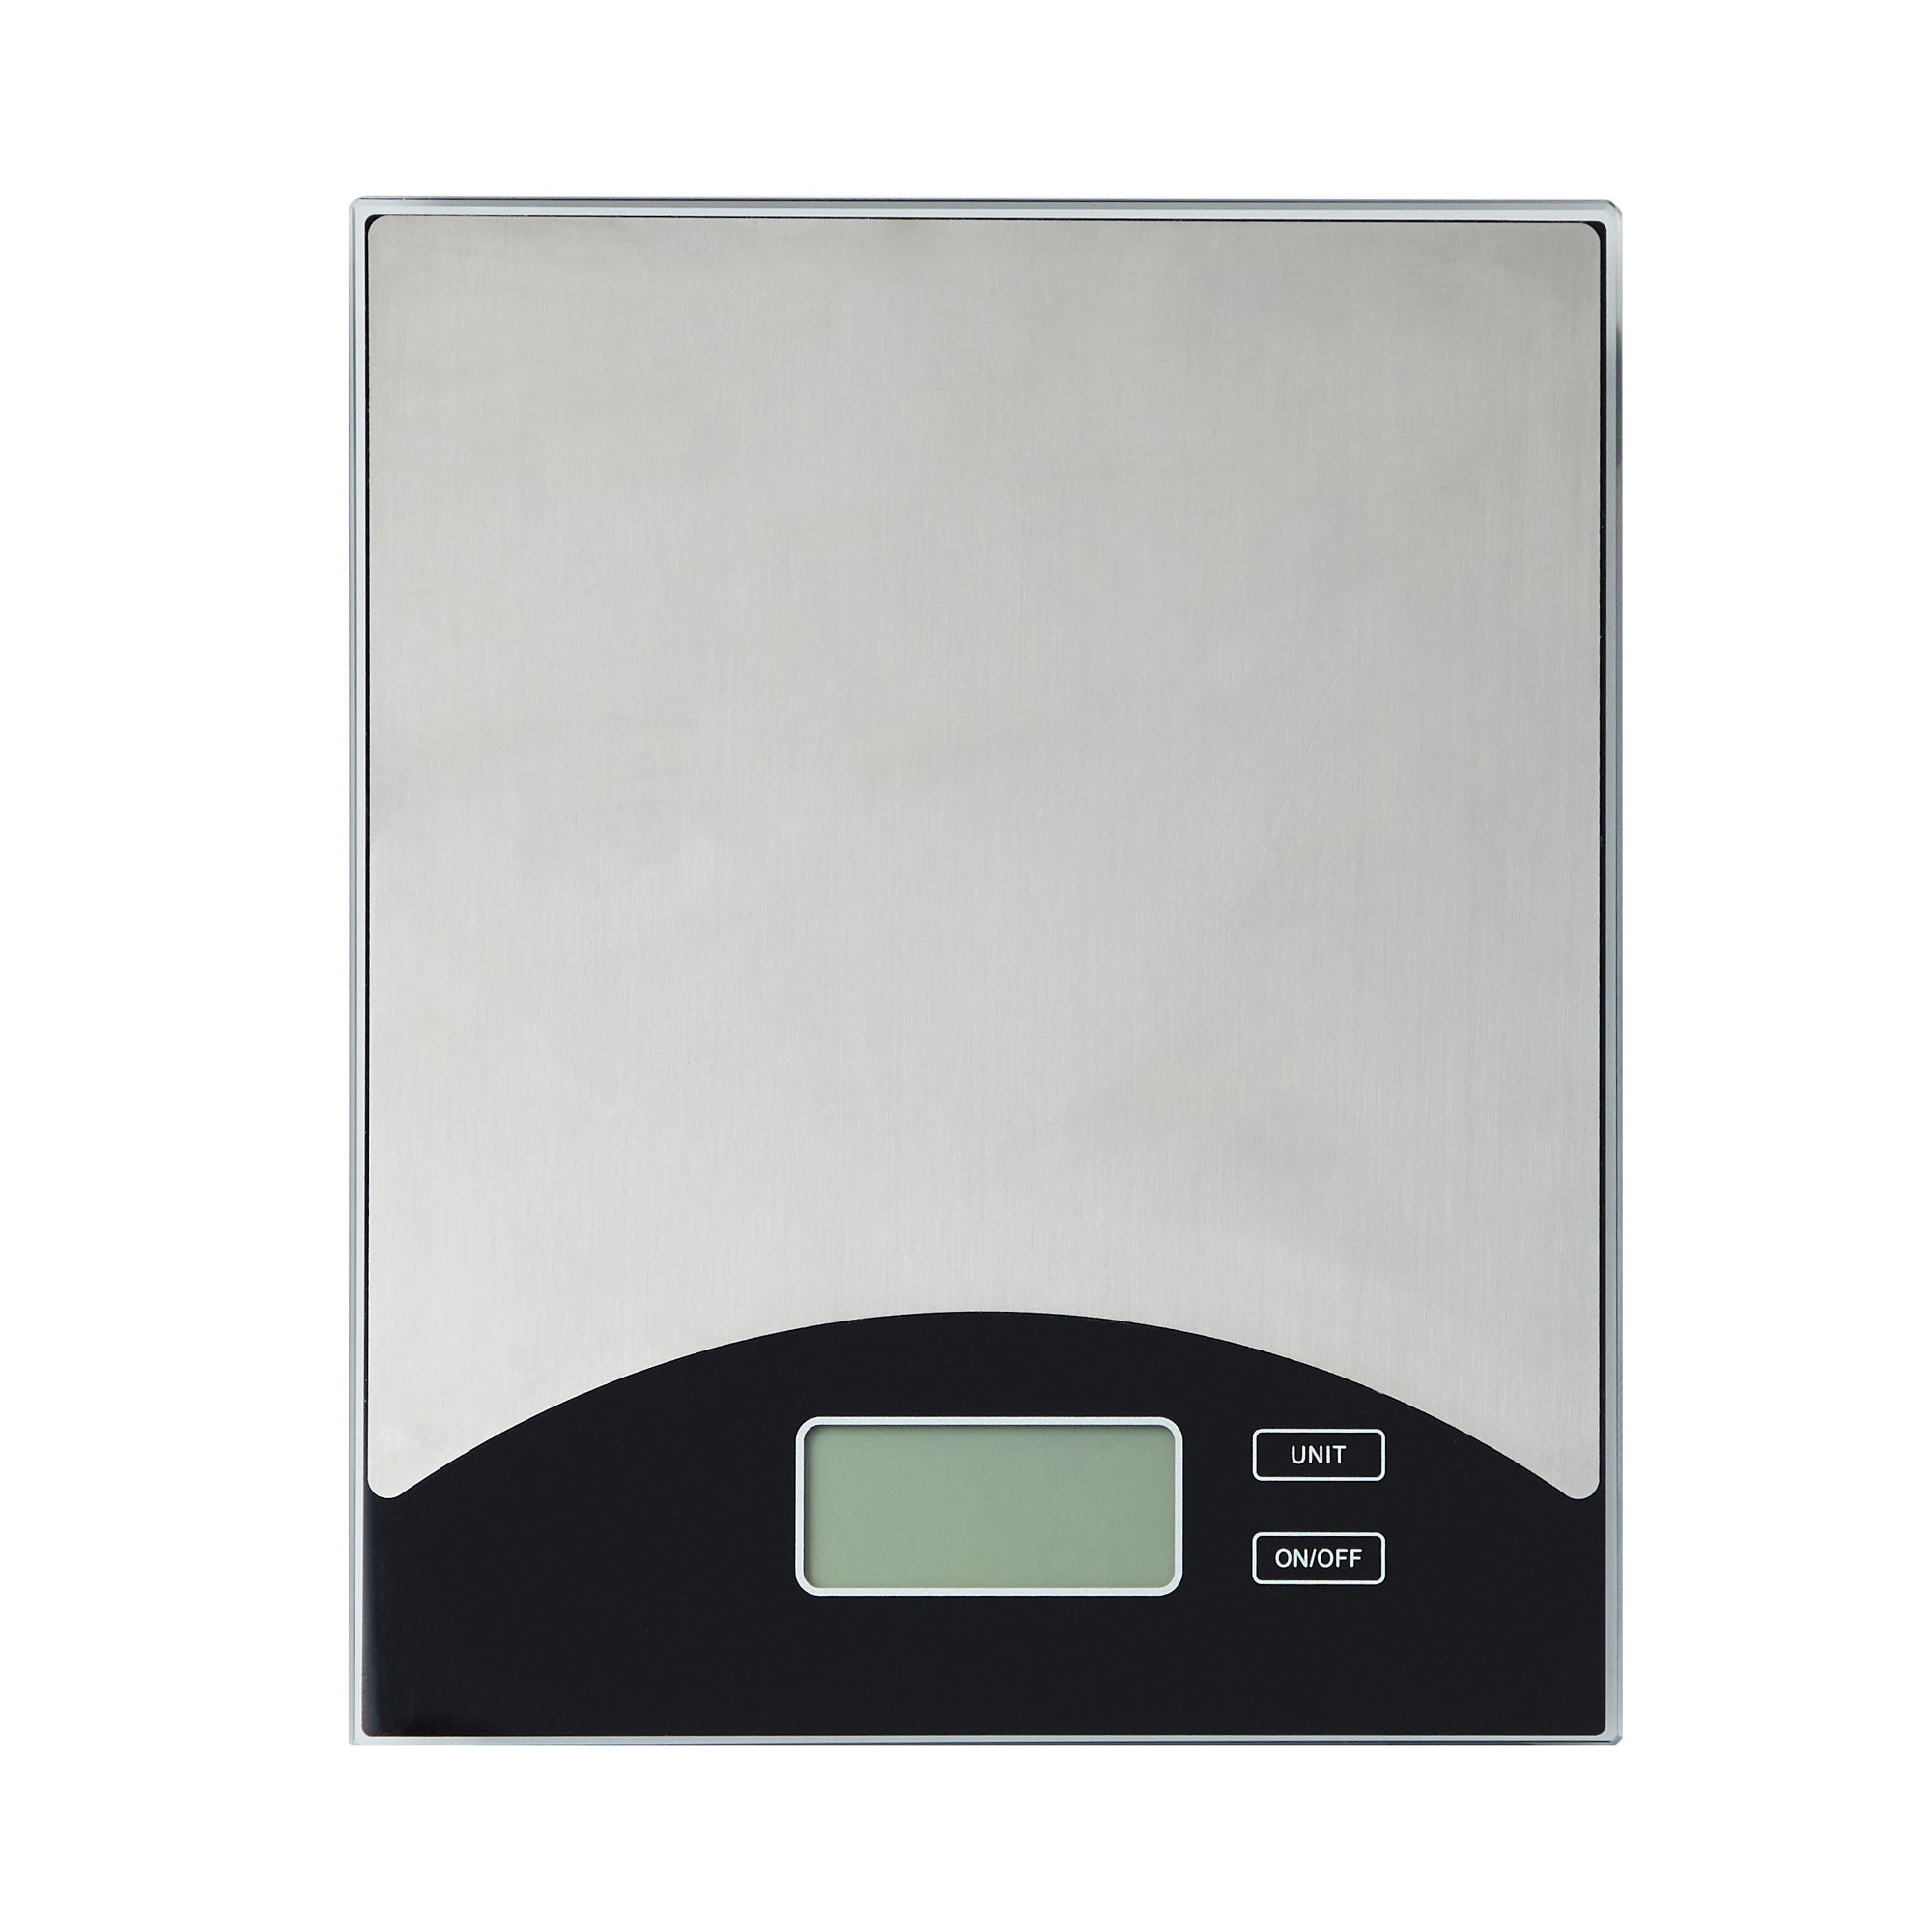 Dunelm Stainless Steel Electronic Kitchen Scales Silver And Black